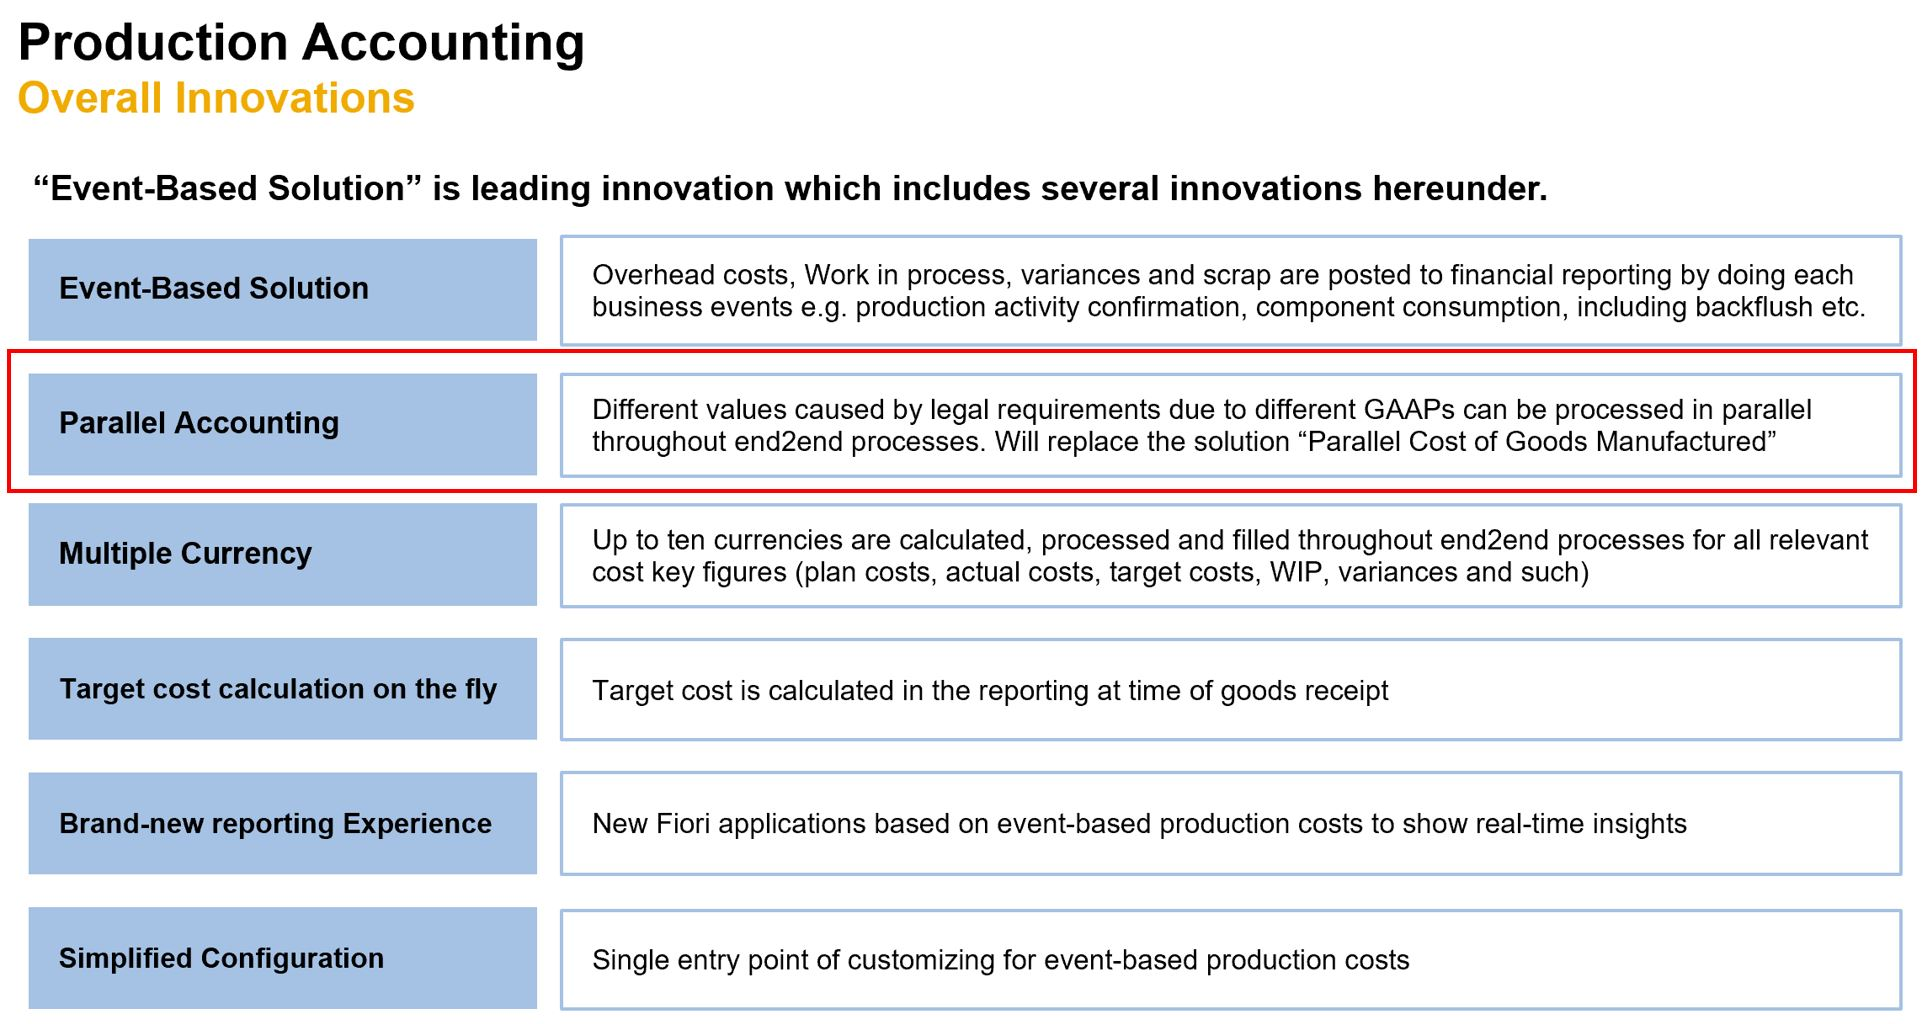 Pic%20%231%3A%20Production%20Accounting%20%u2013%20Overall%20Innovations